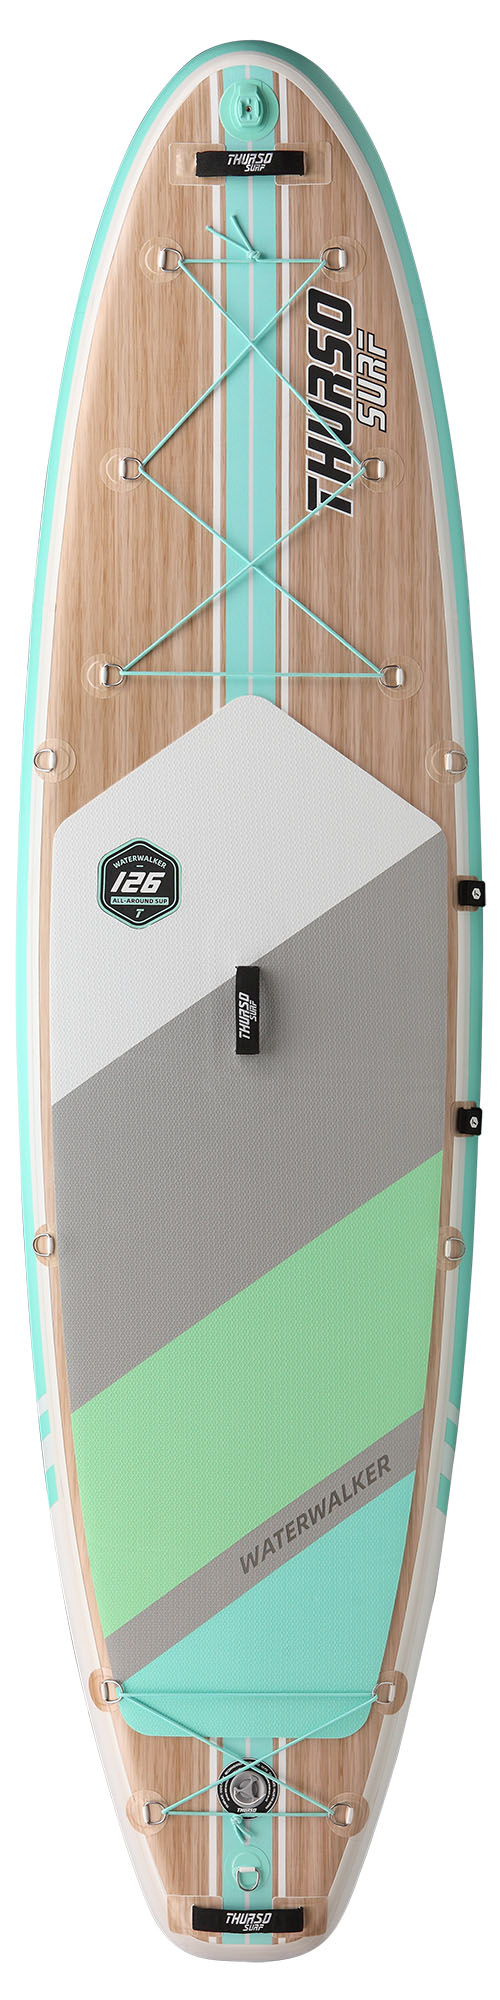 stand-up-paddle-board-waterwalker-126-turquoise-thurso-surf-board-only-vertical.jpg